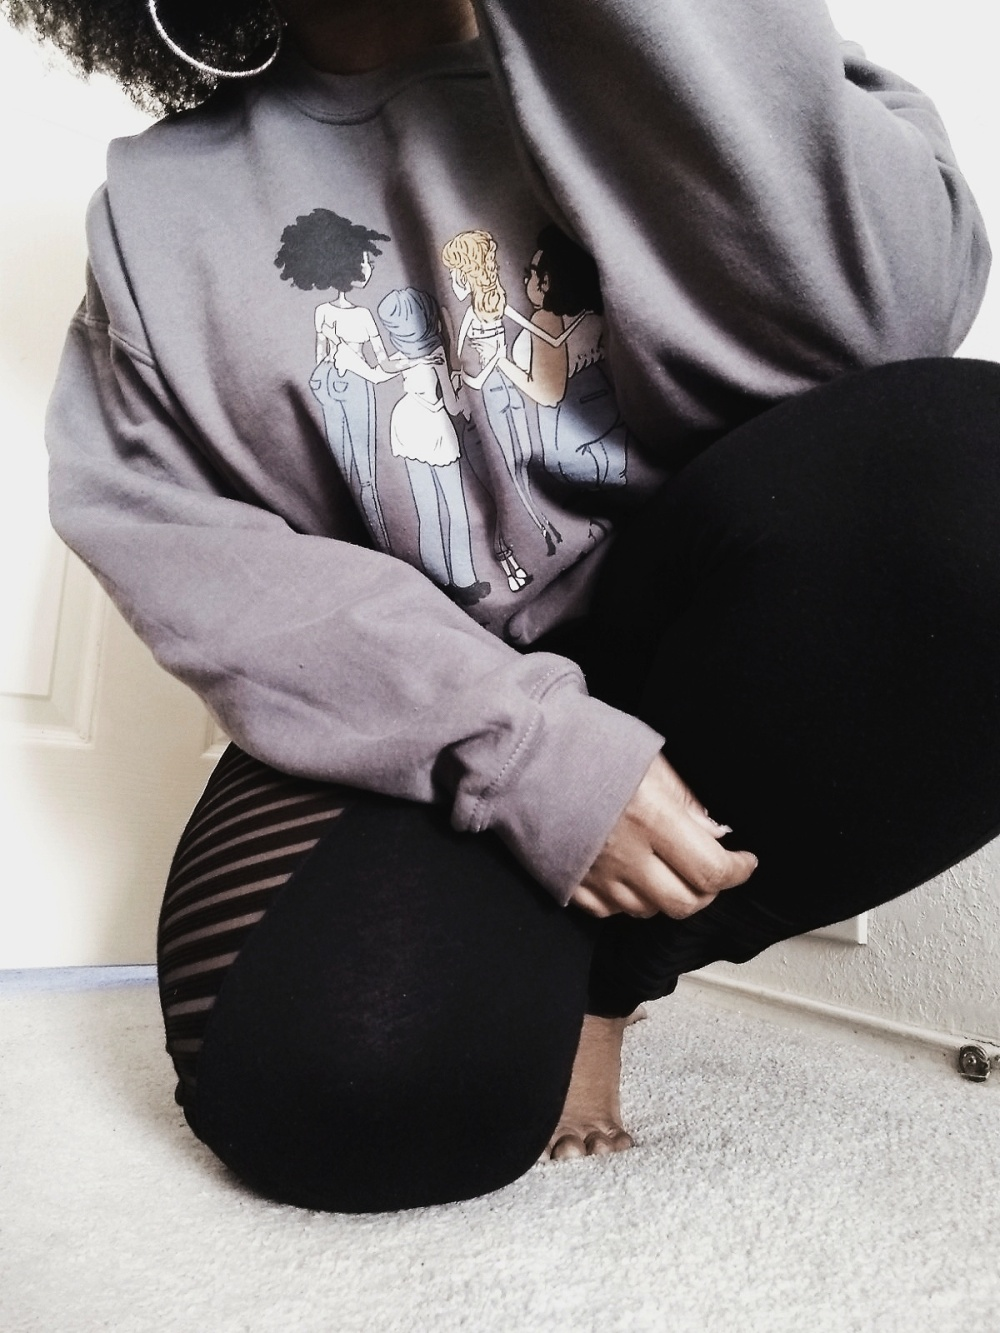 Body Posi Clothing Line that Represents Different Body Types